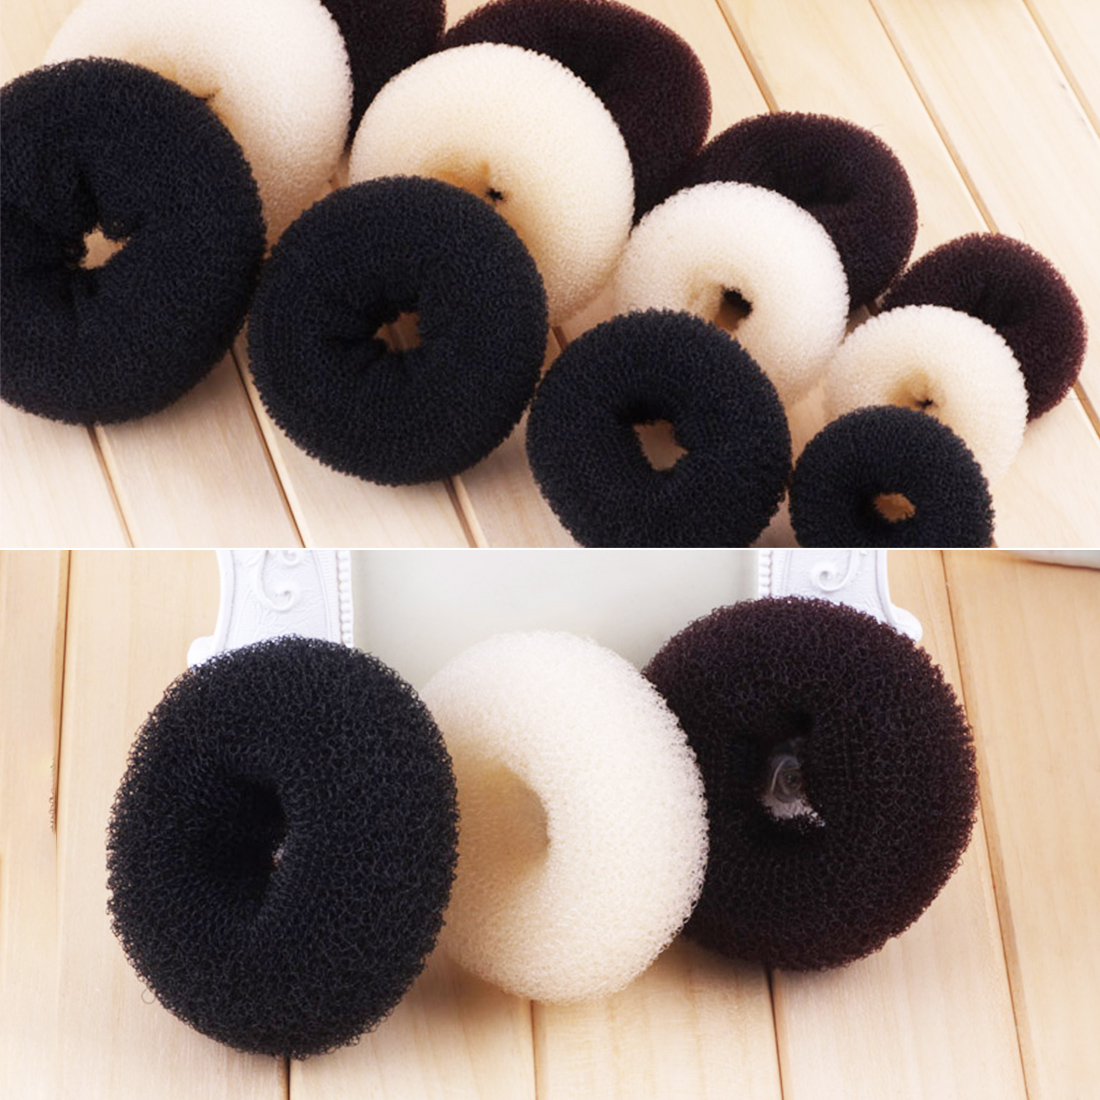 Girl Women Hairbands Hair Accessories  Donut Bun Maker Round Sponge Hair Curler Curling Iron Hairstyle Styling Tools